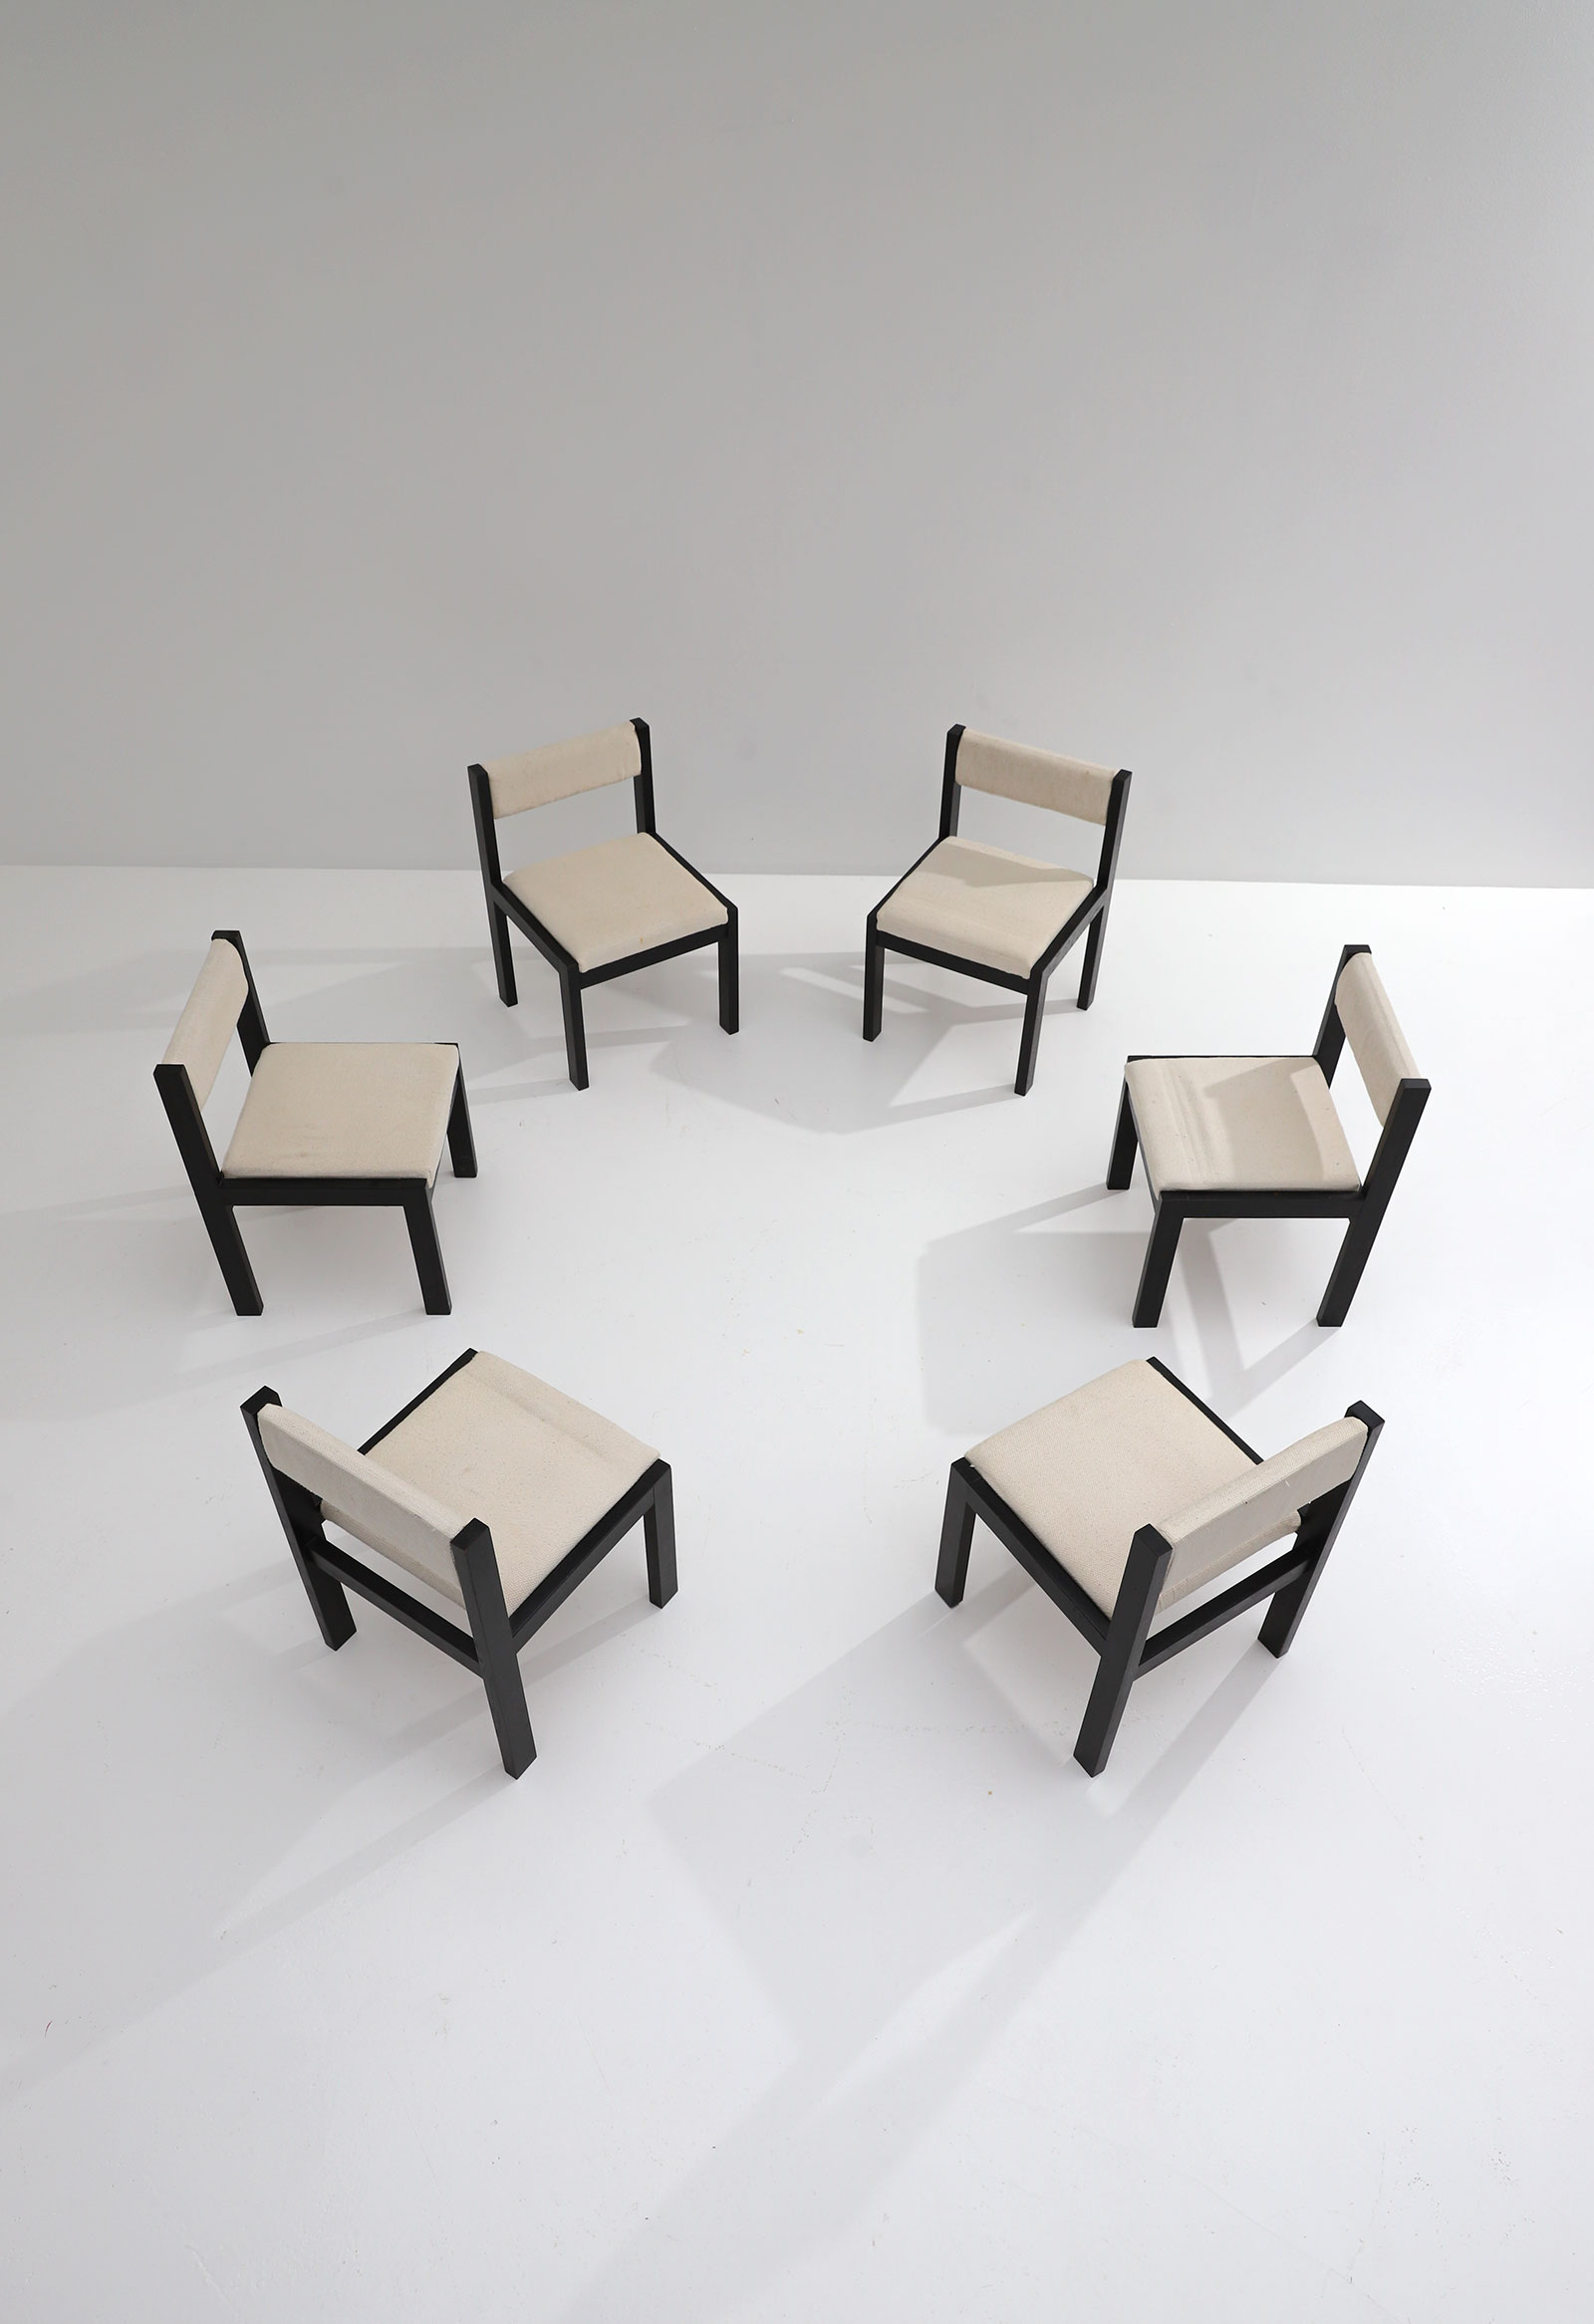 6 chairsimage 1